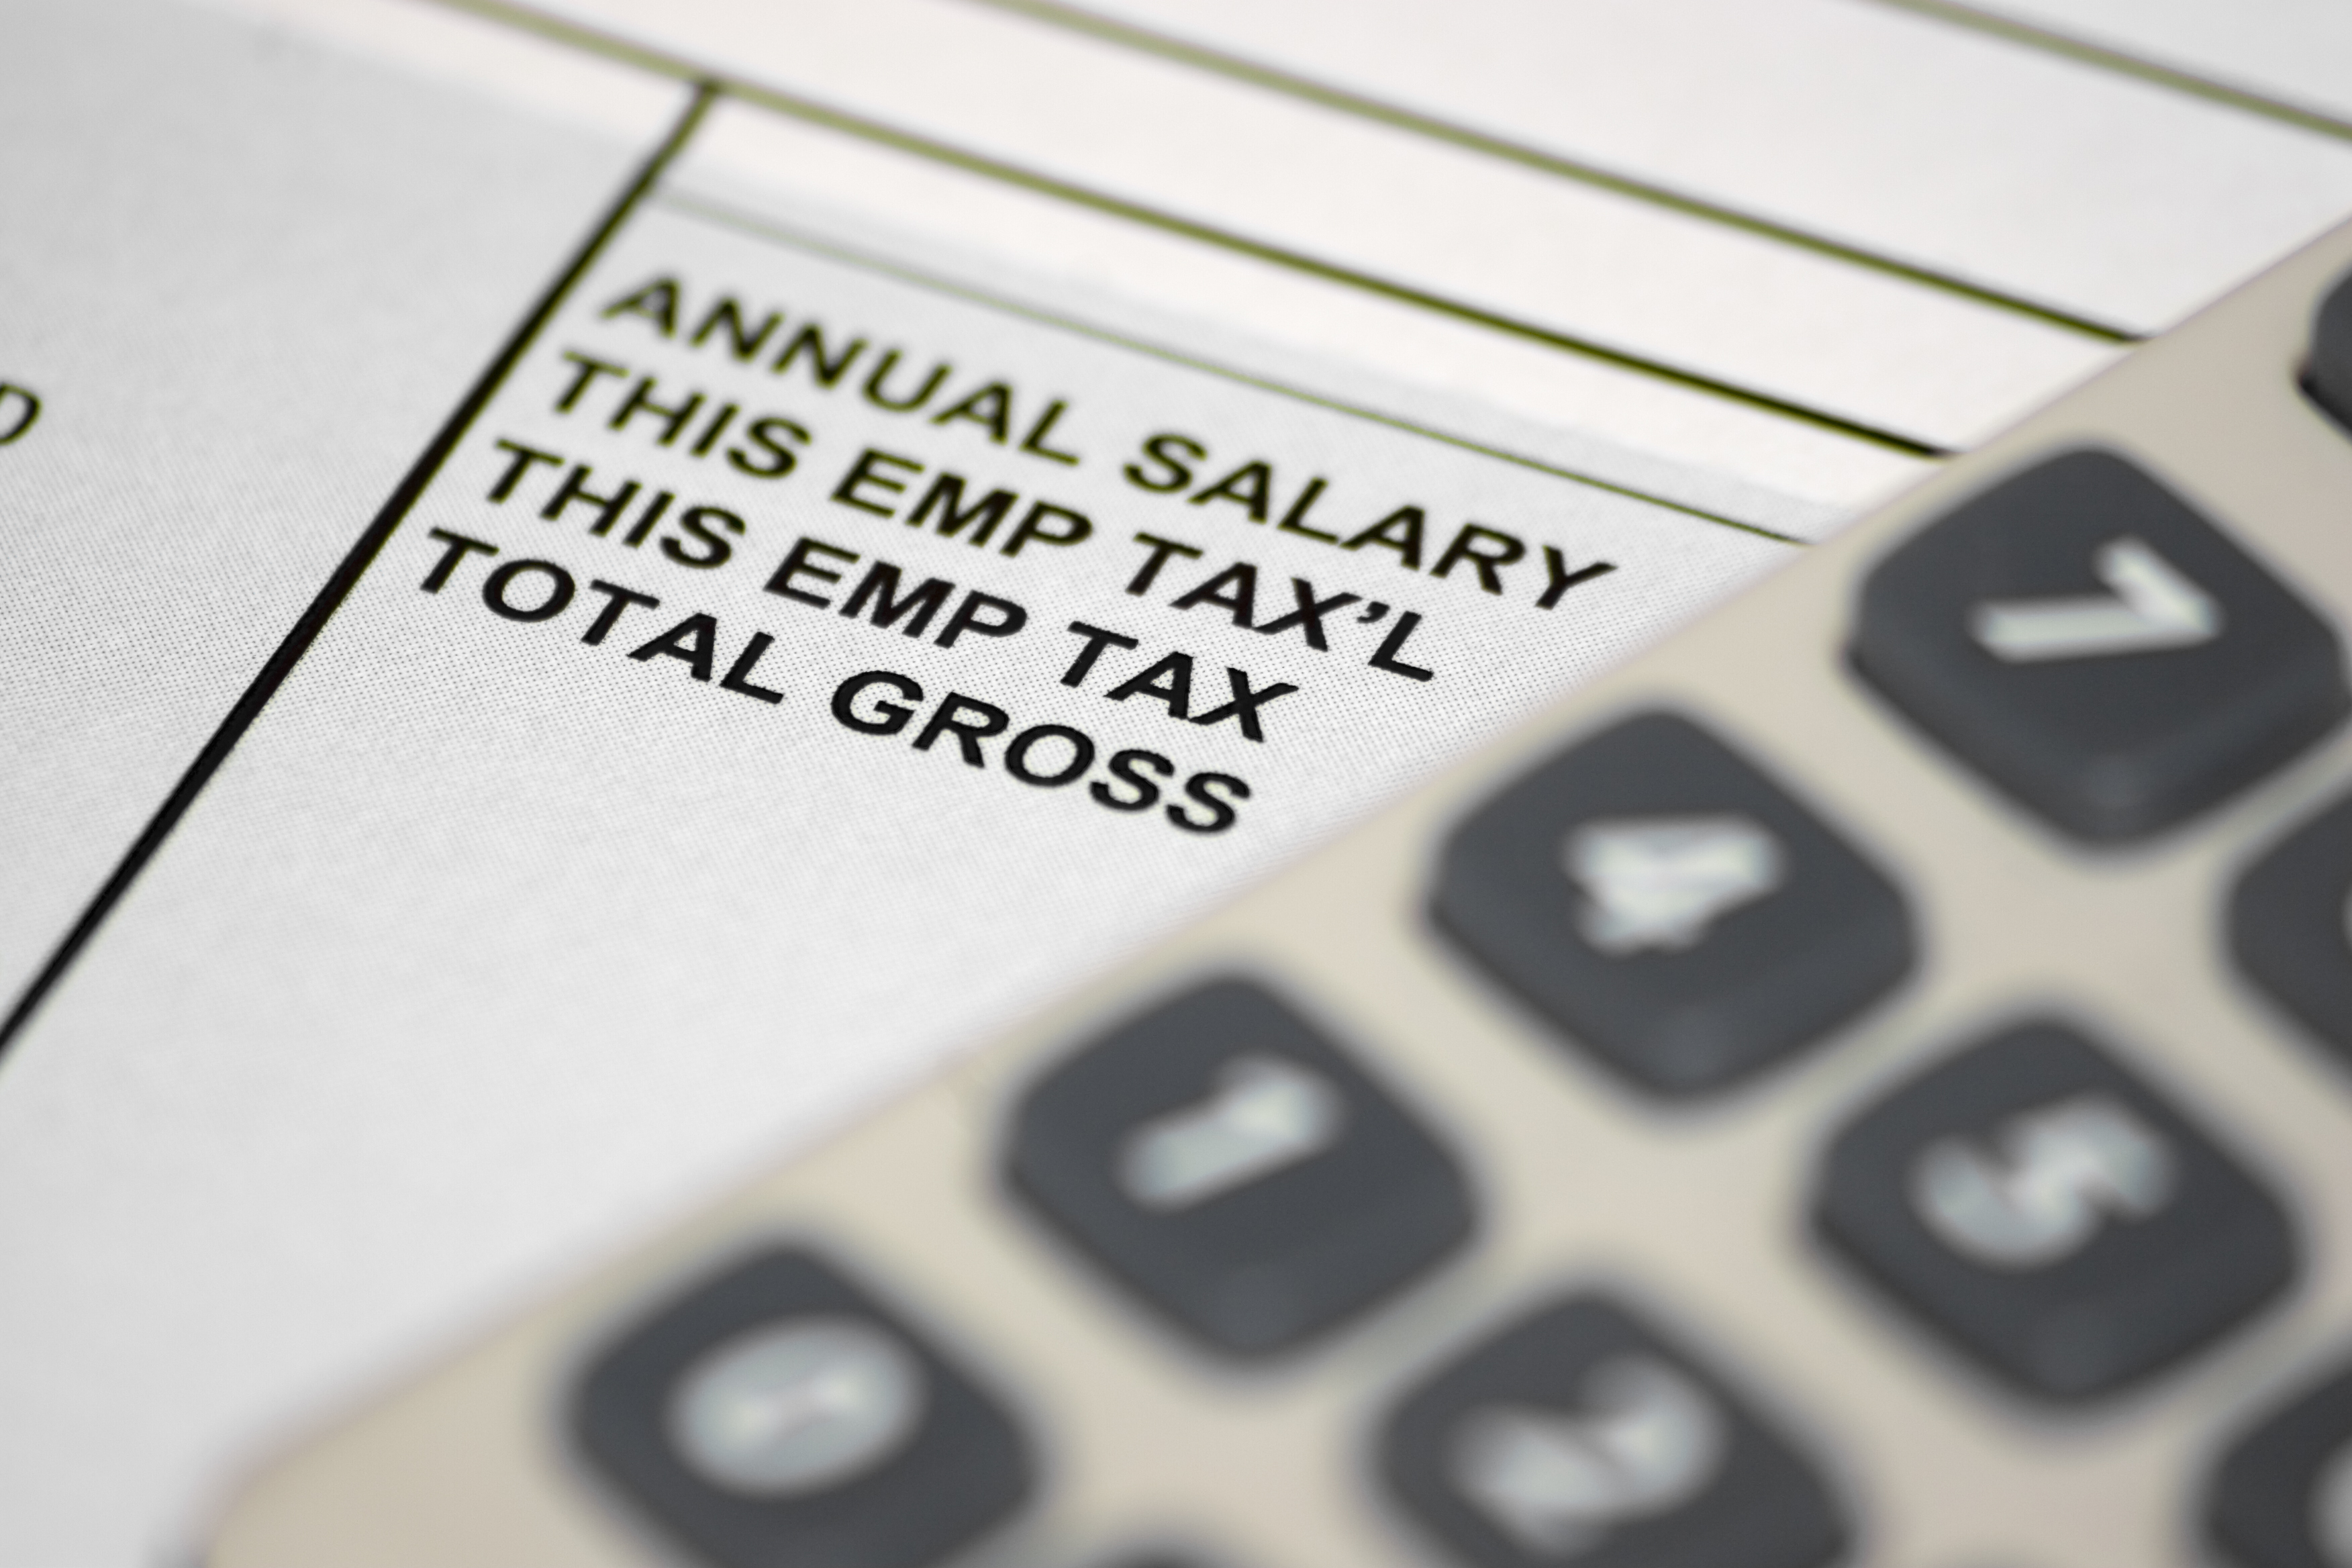 What Taxes Are Taken Out of a Paycheck in Illinois?